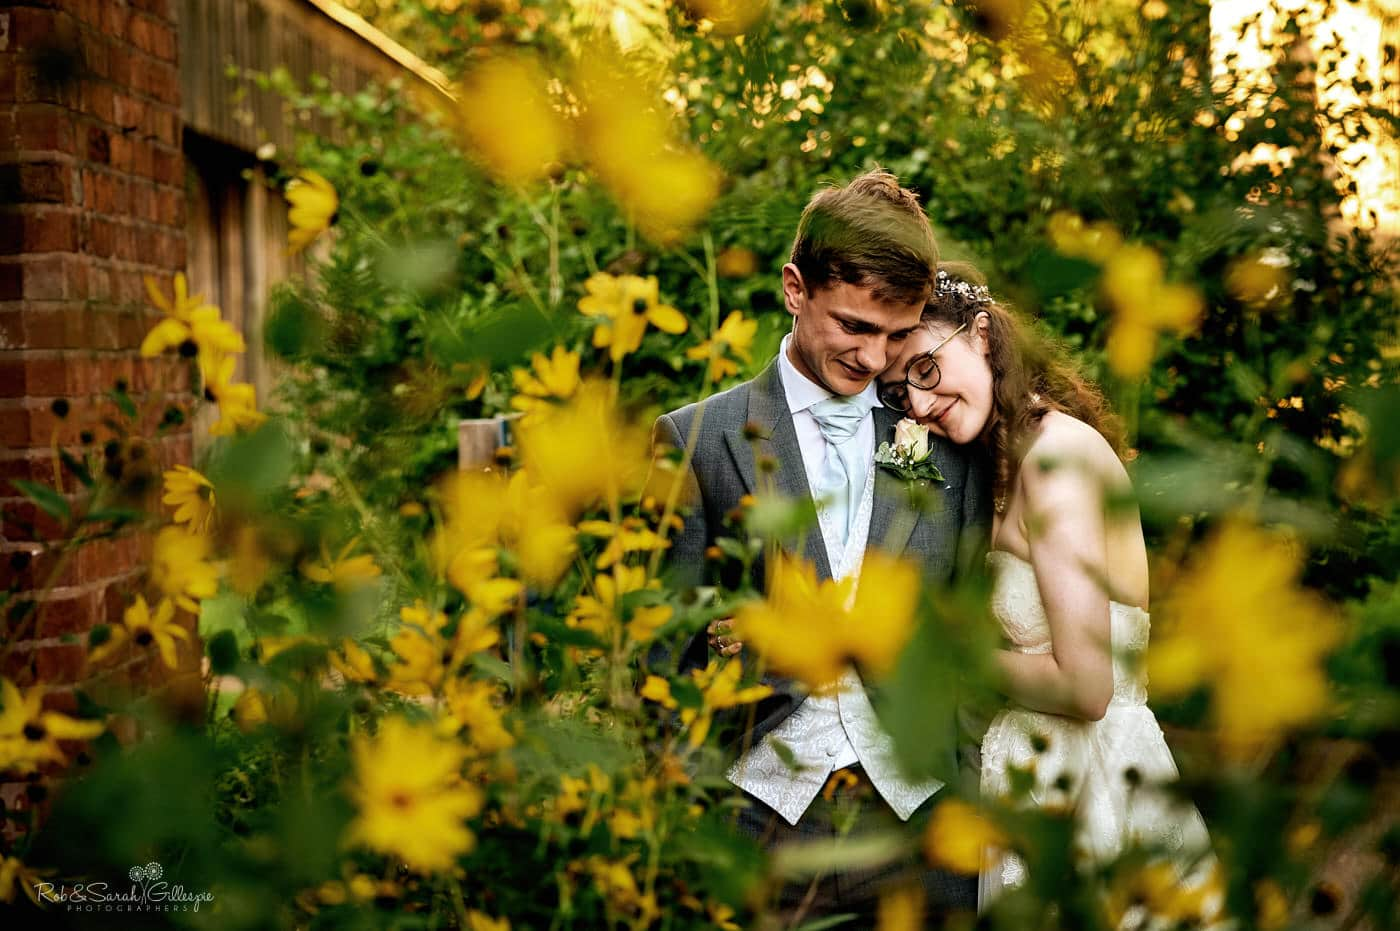 Bride and groom happy together with yellow flowers